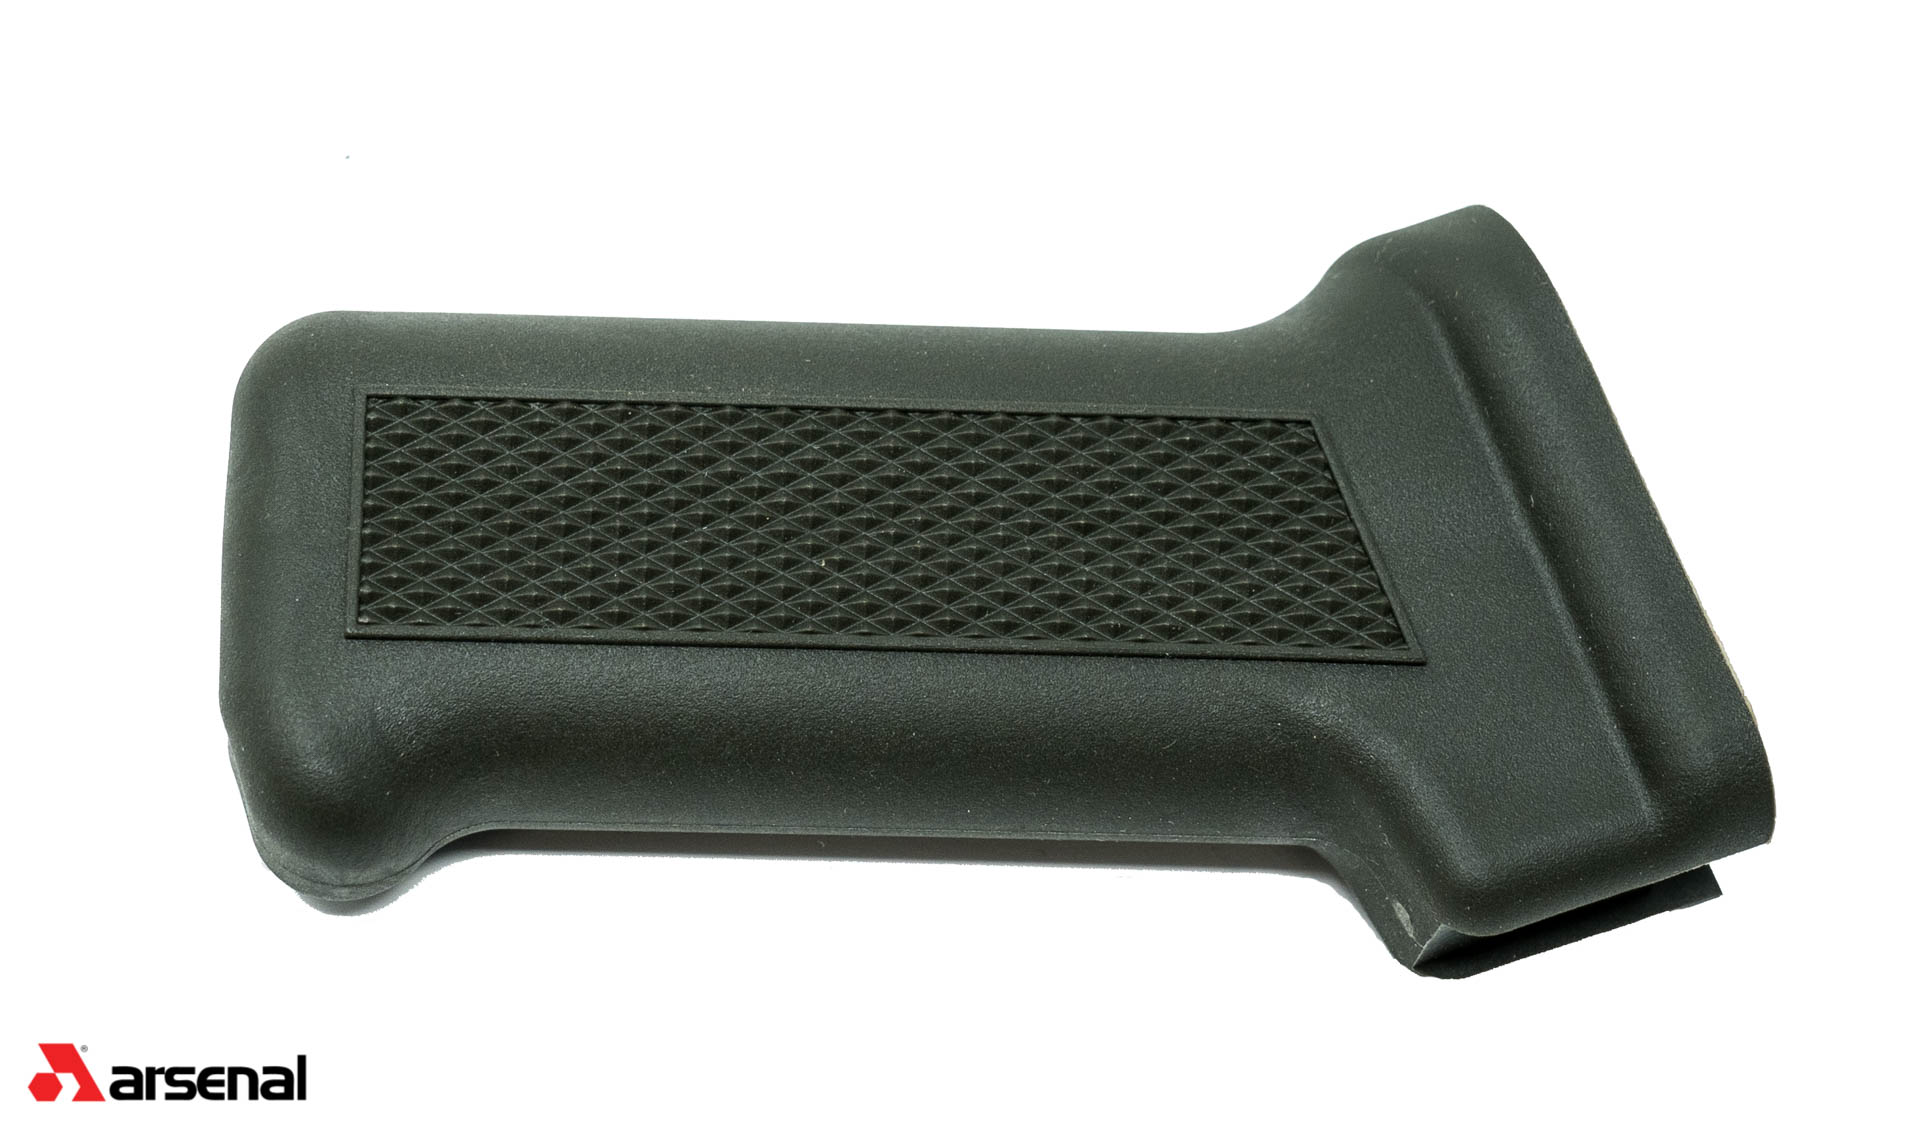 OD Green Pistol Grip US